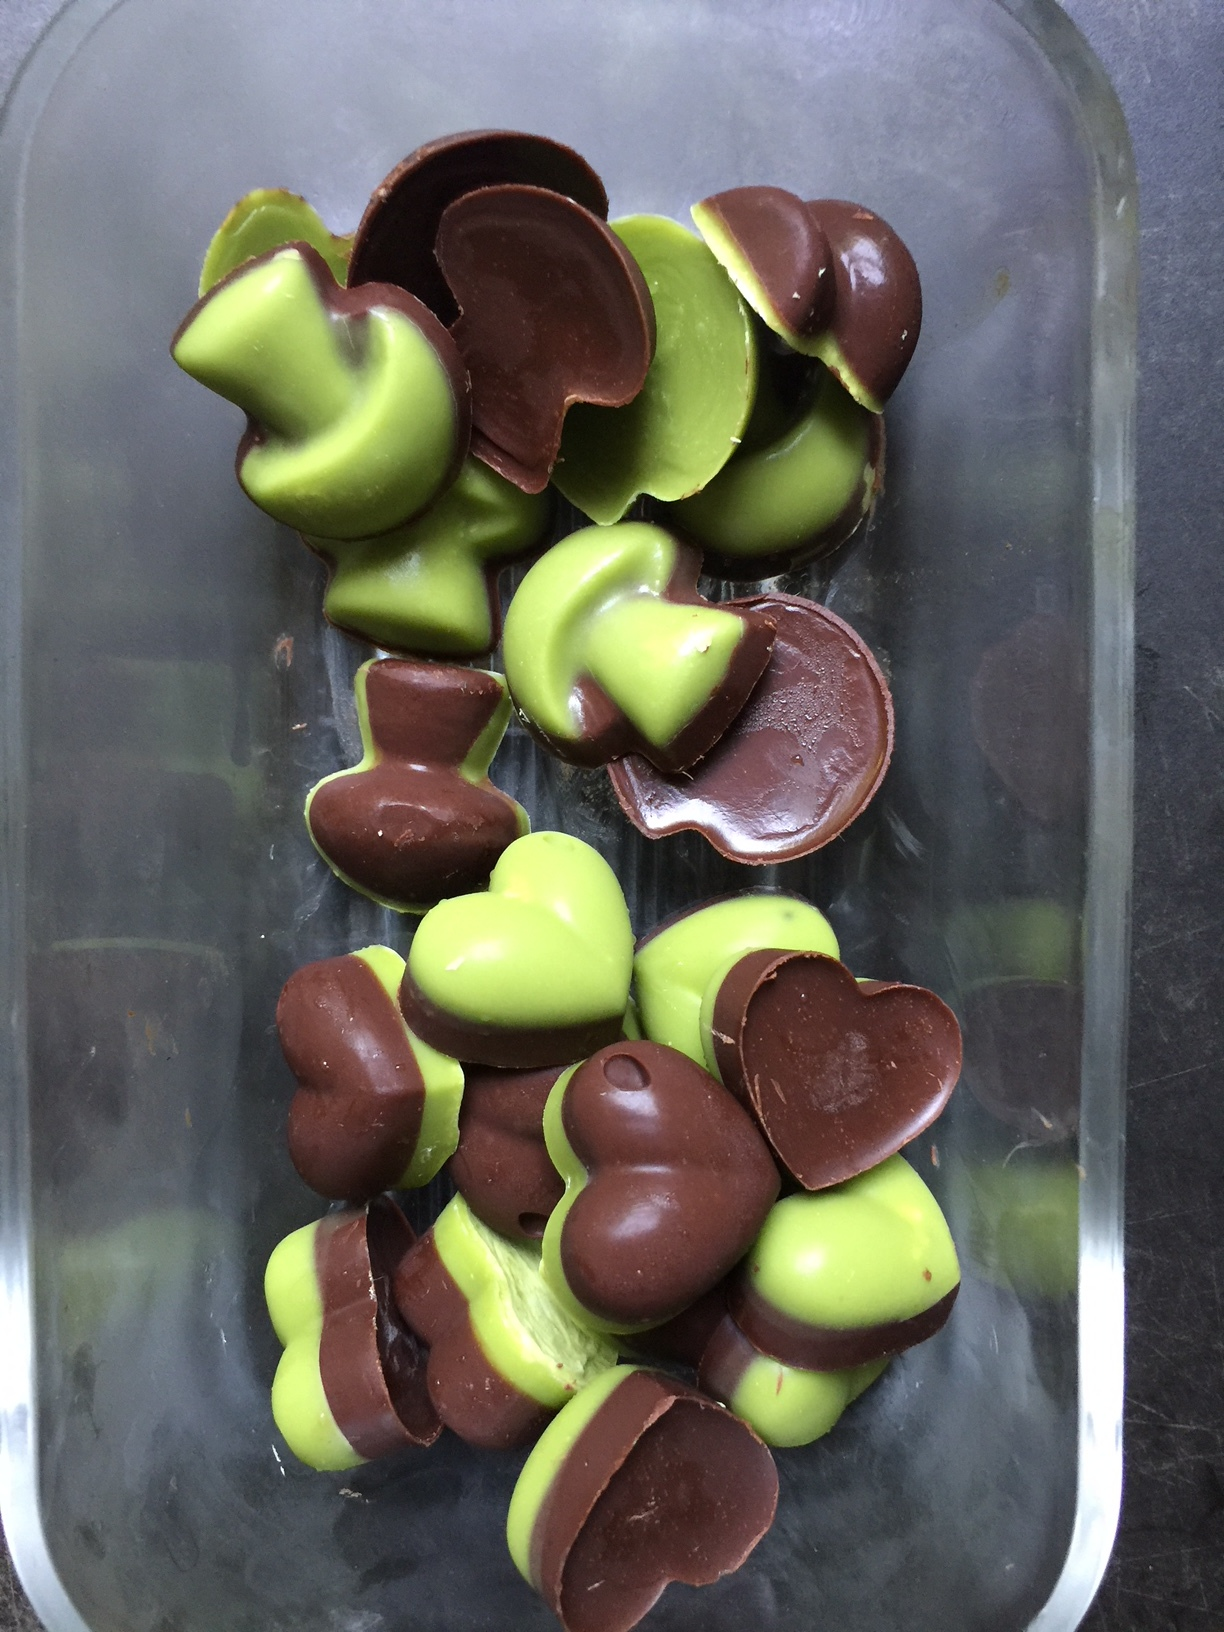 Store your chocolates in a glass jar in the freezer!